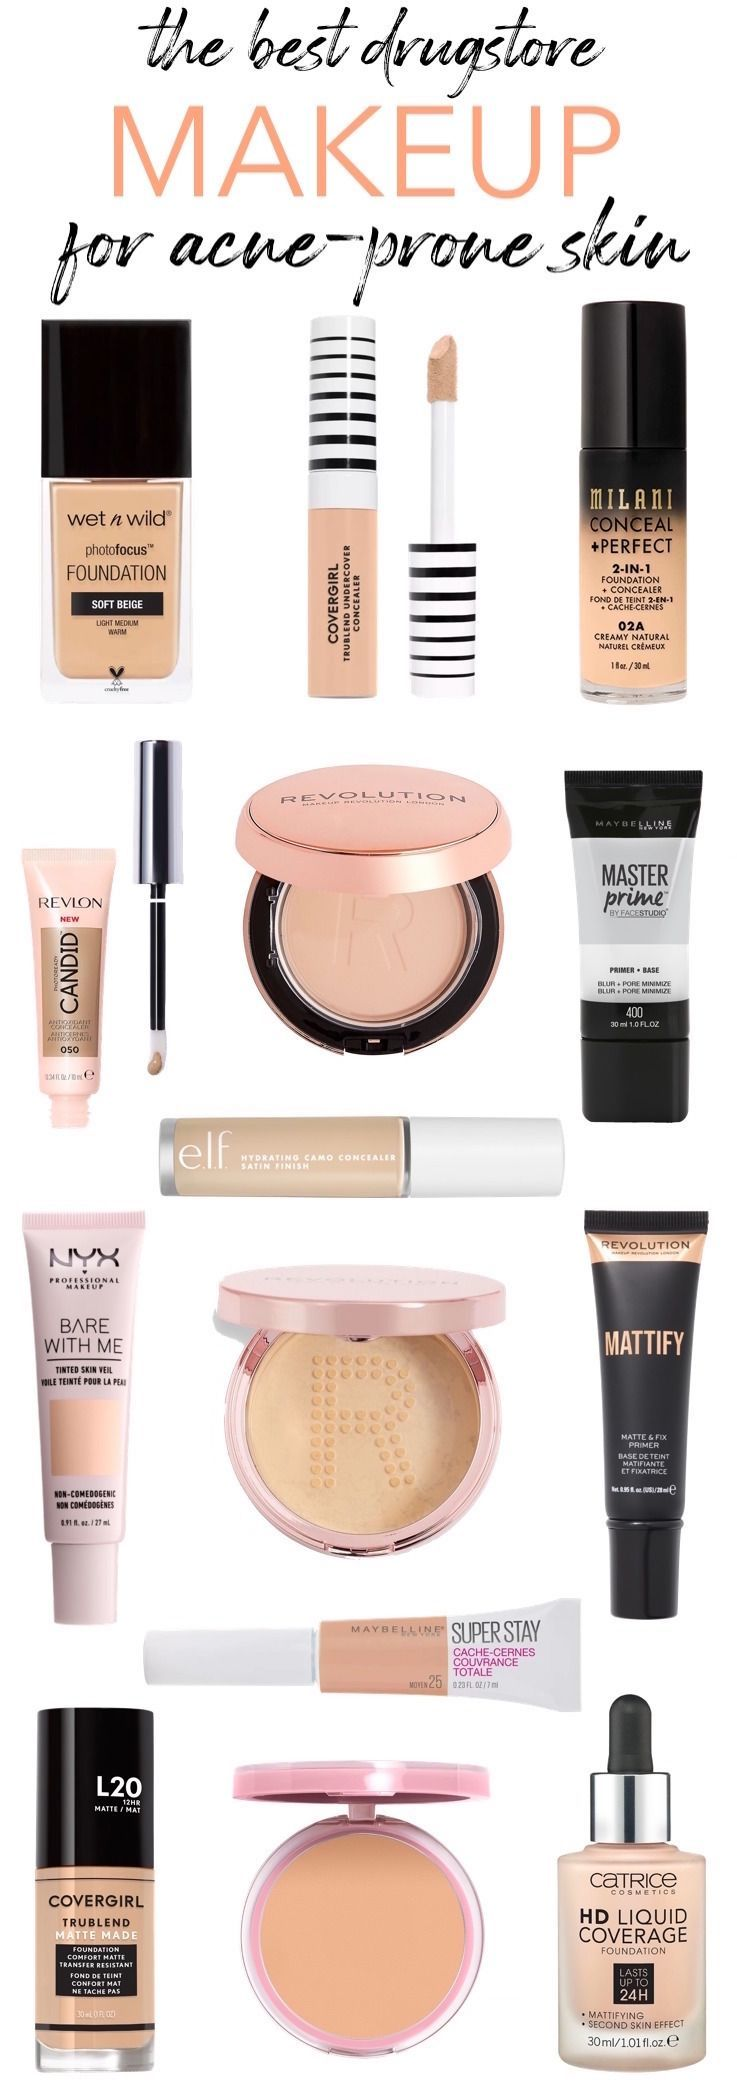 The Ultimate List Best Drugstore Makeup For Acne Prone Skin In 2020 Best Drugstore Makeup Acne Makeup Drugstore Makeup